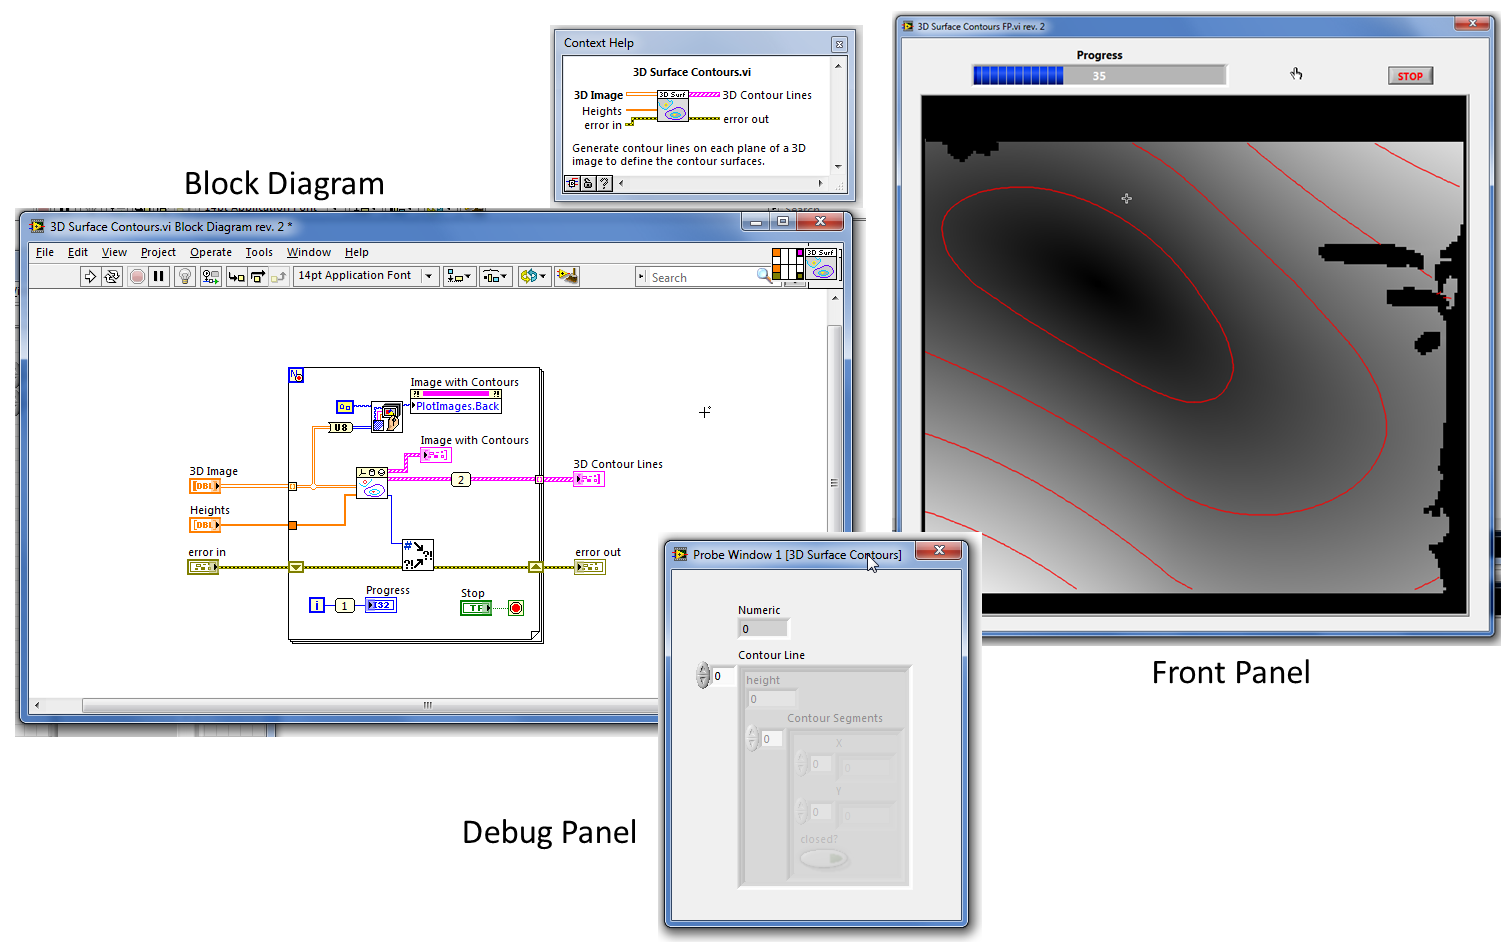 the block diagram should be the central vi component not the front rh forums ni com